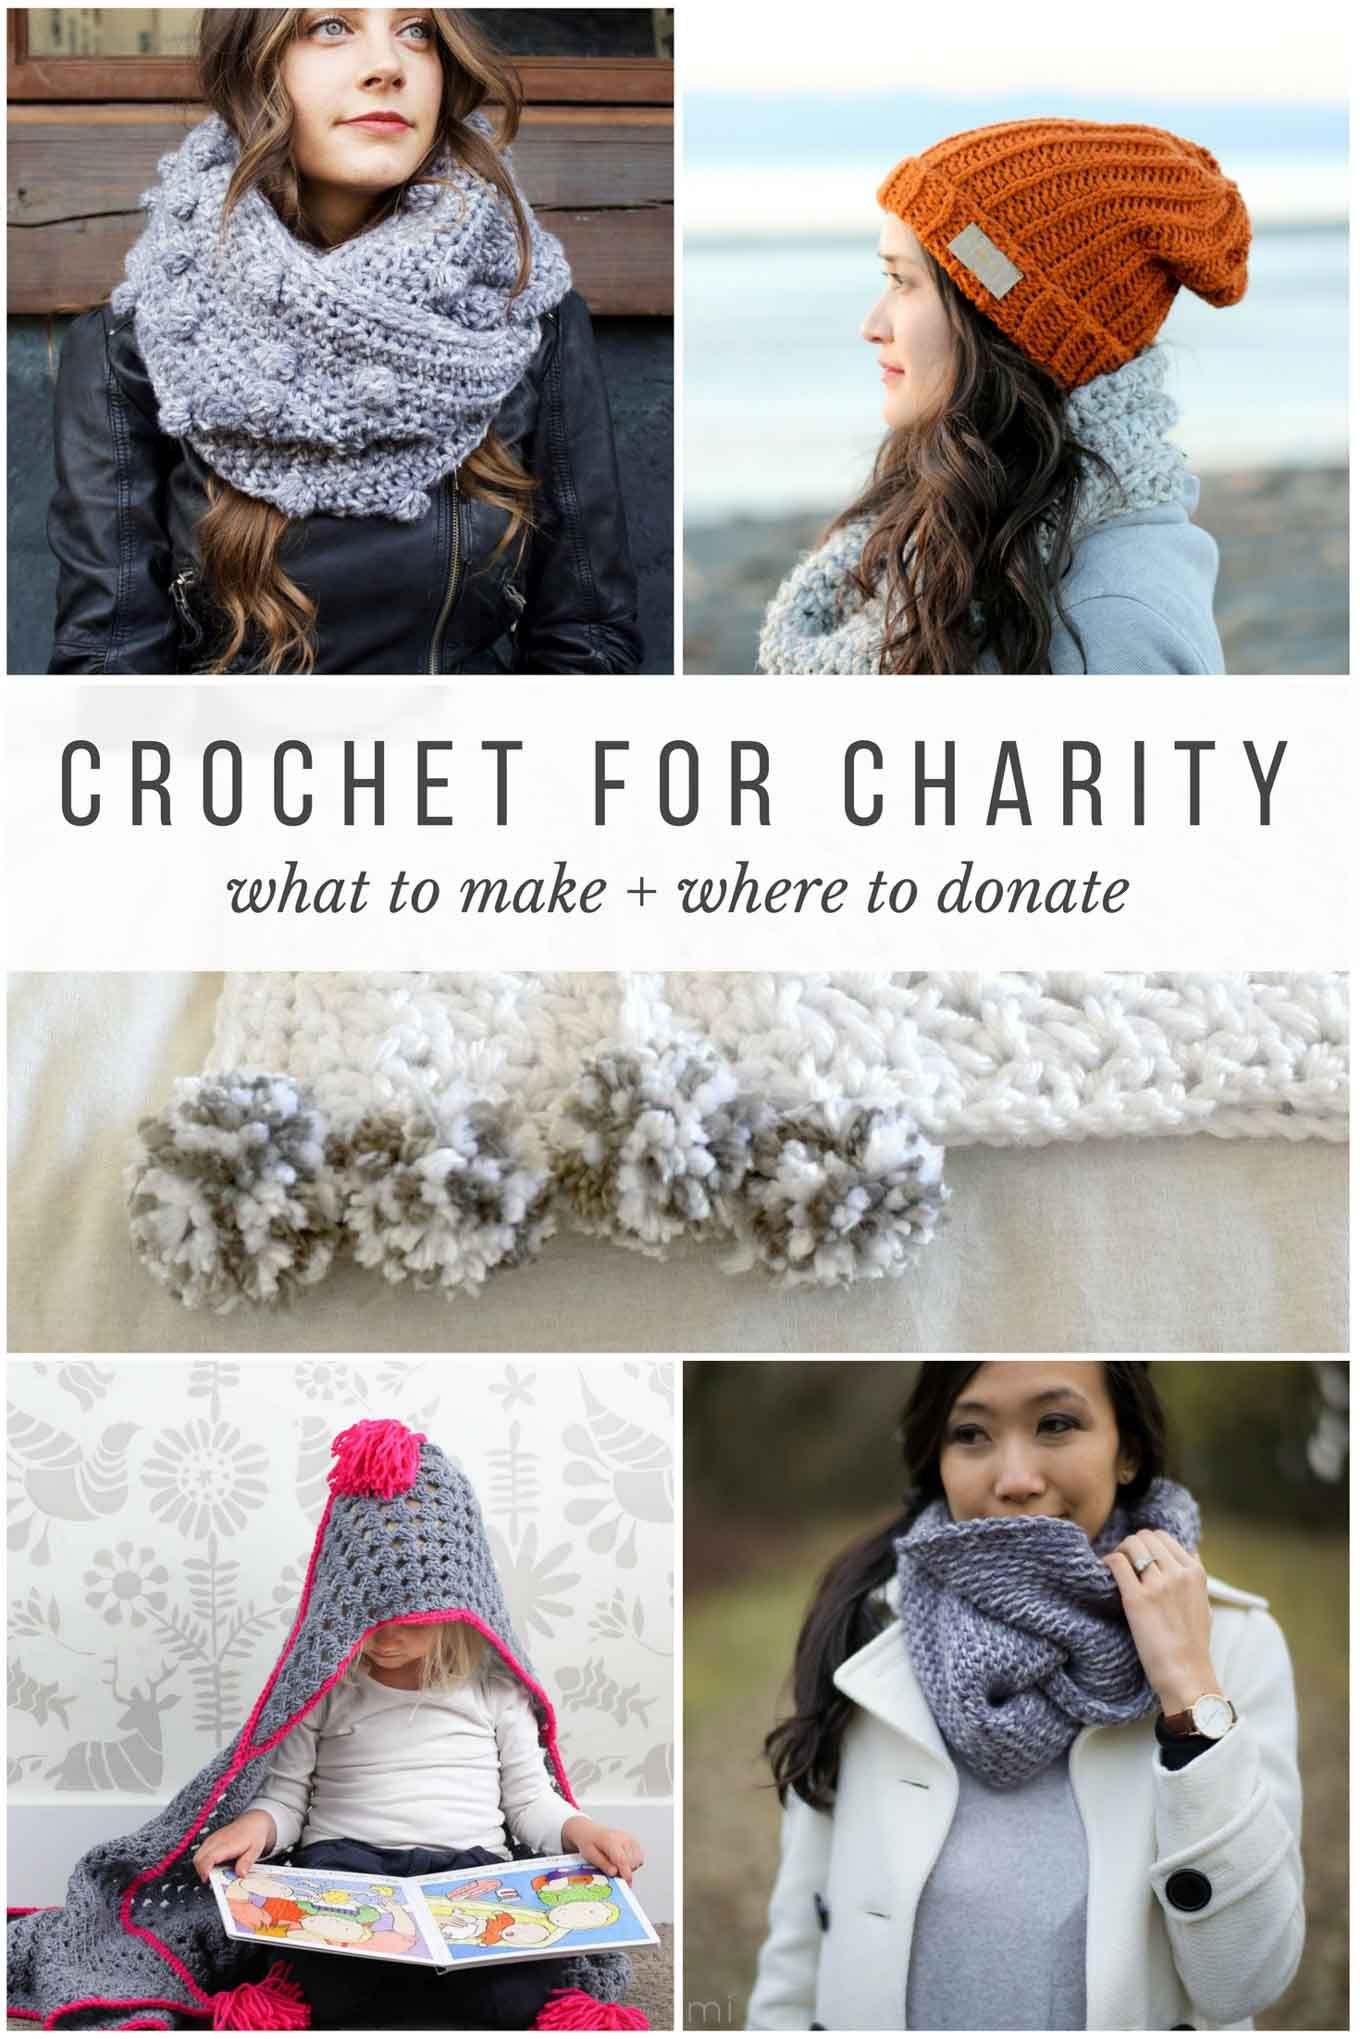 Crocheting and Knitting for Charity - What to Make + Where to Donate ...